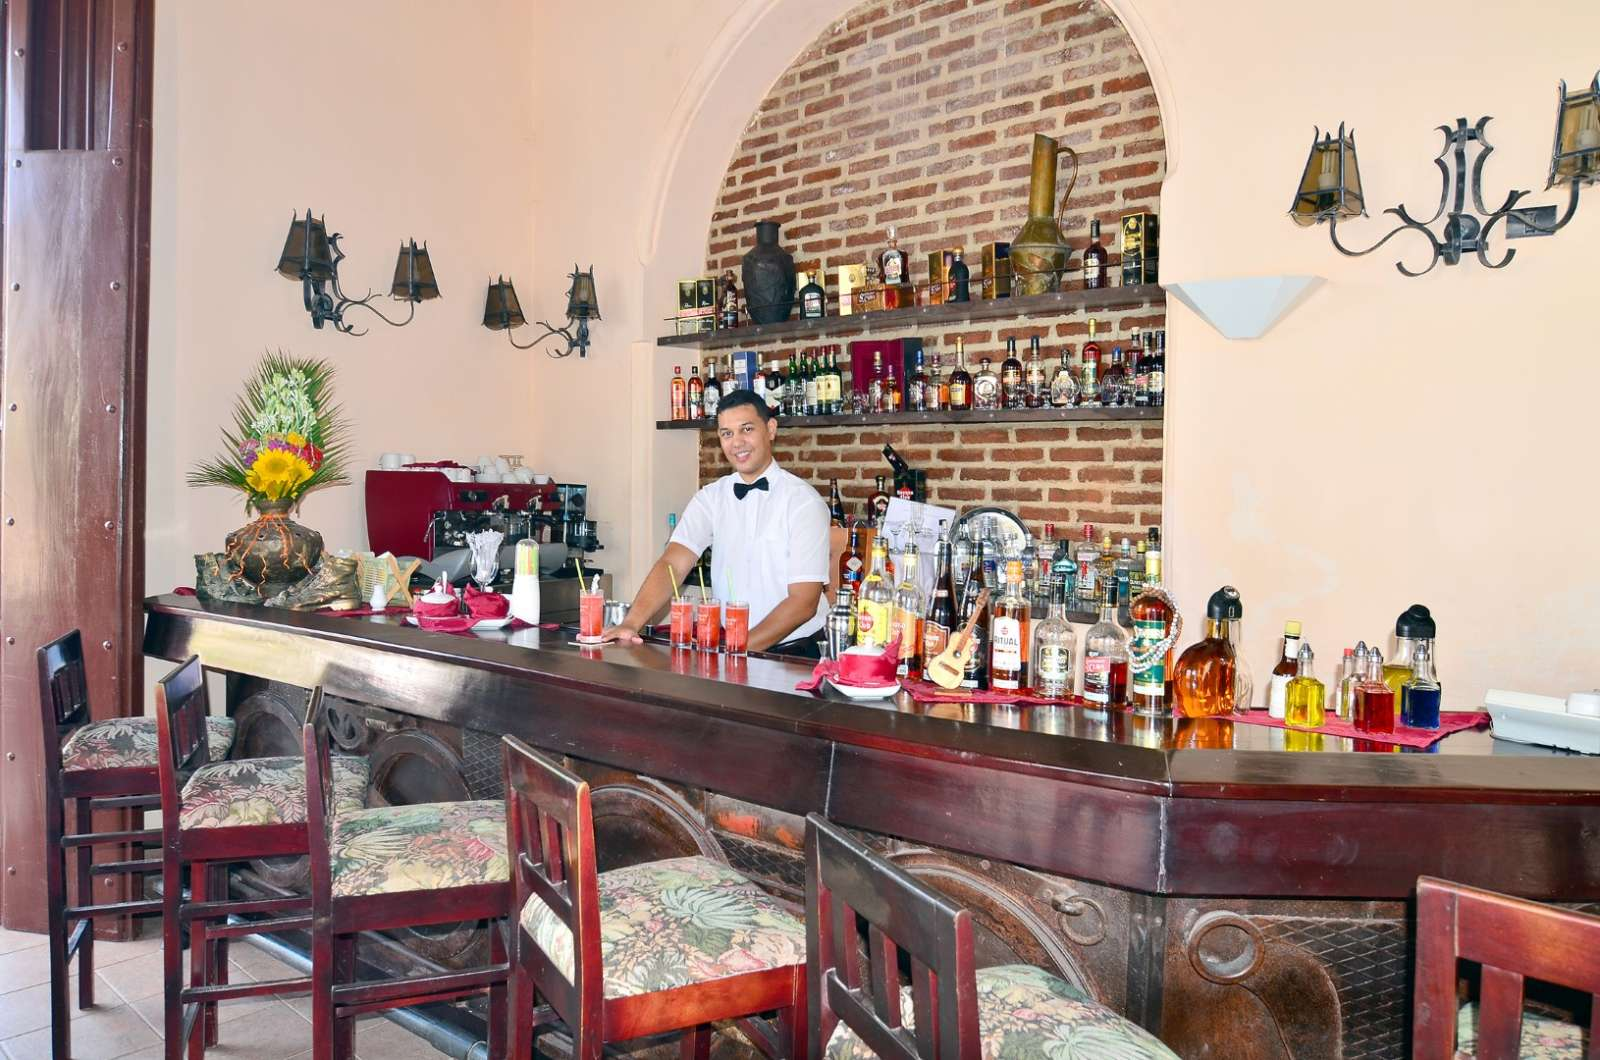 Barman at Camino de Hierro